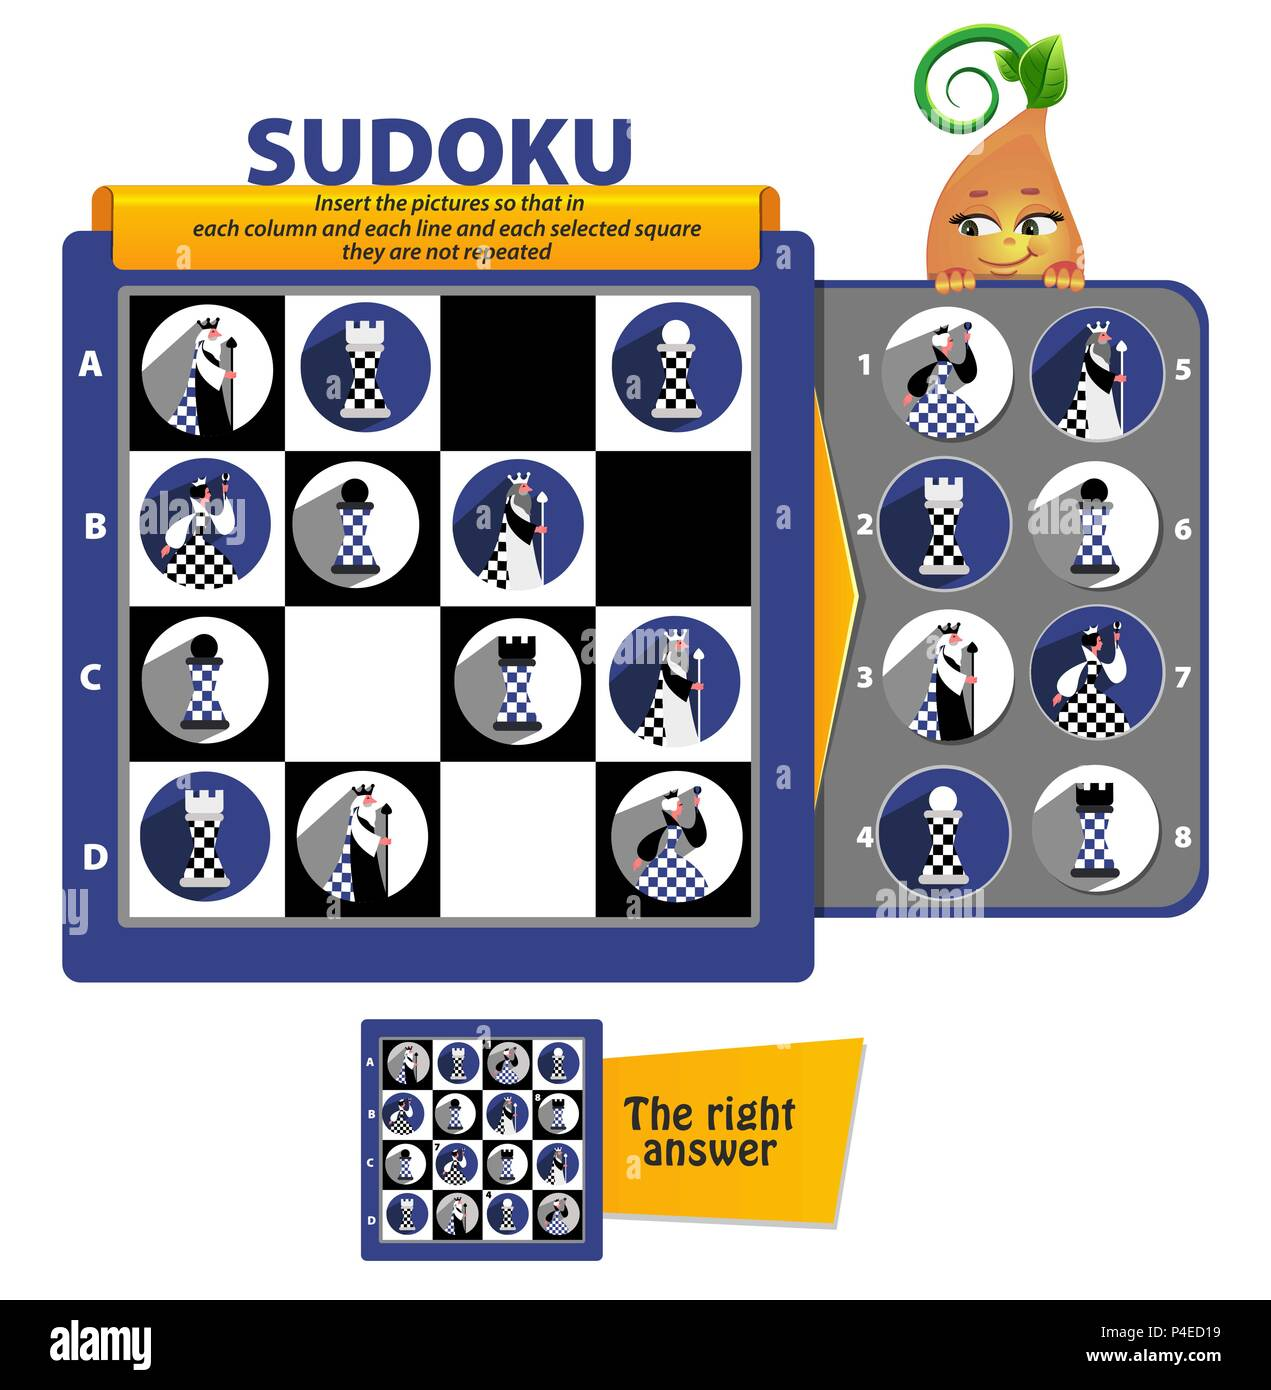 Sudoku Game For Children And Adults Educational Game For Kids Puzzle Development Of Logic Iq Stock Vector Image Art Alamy